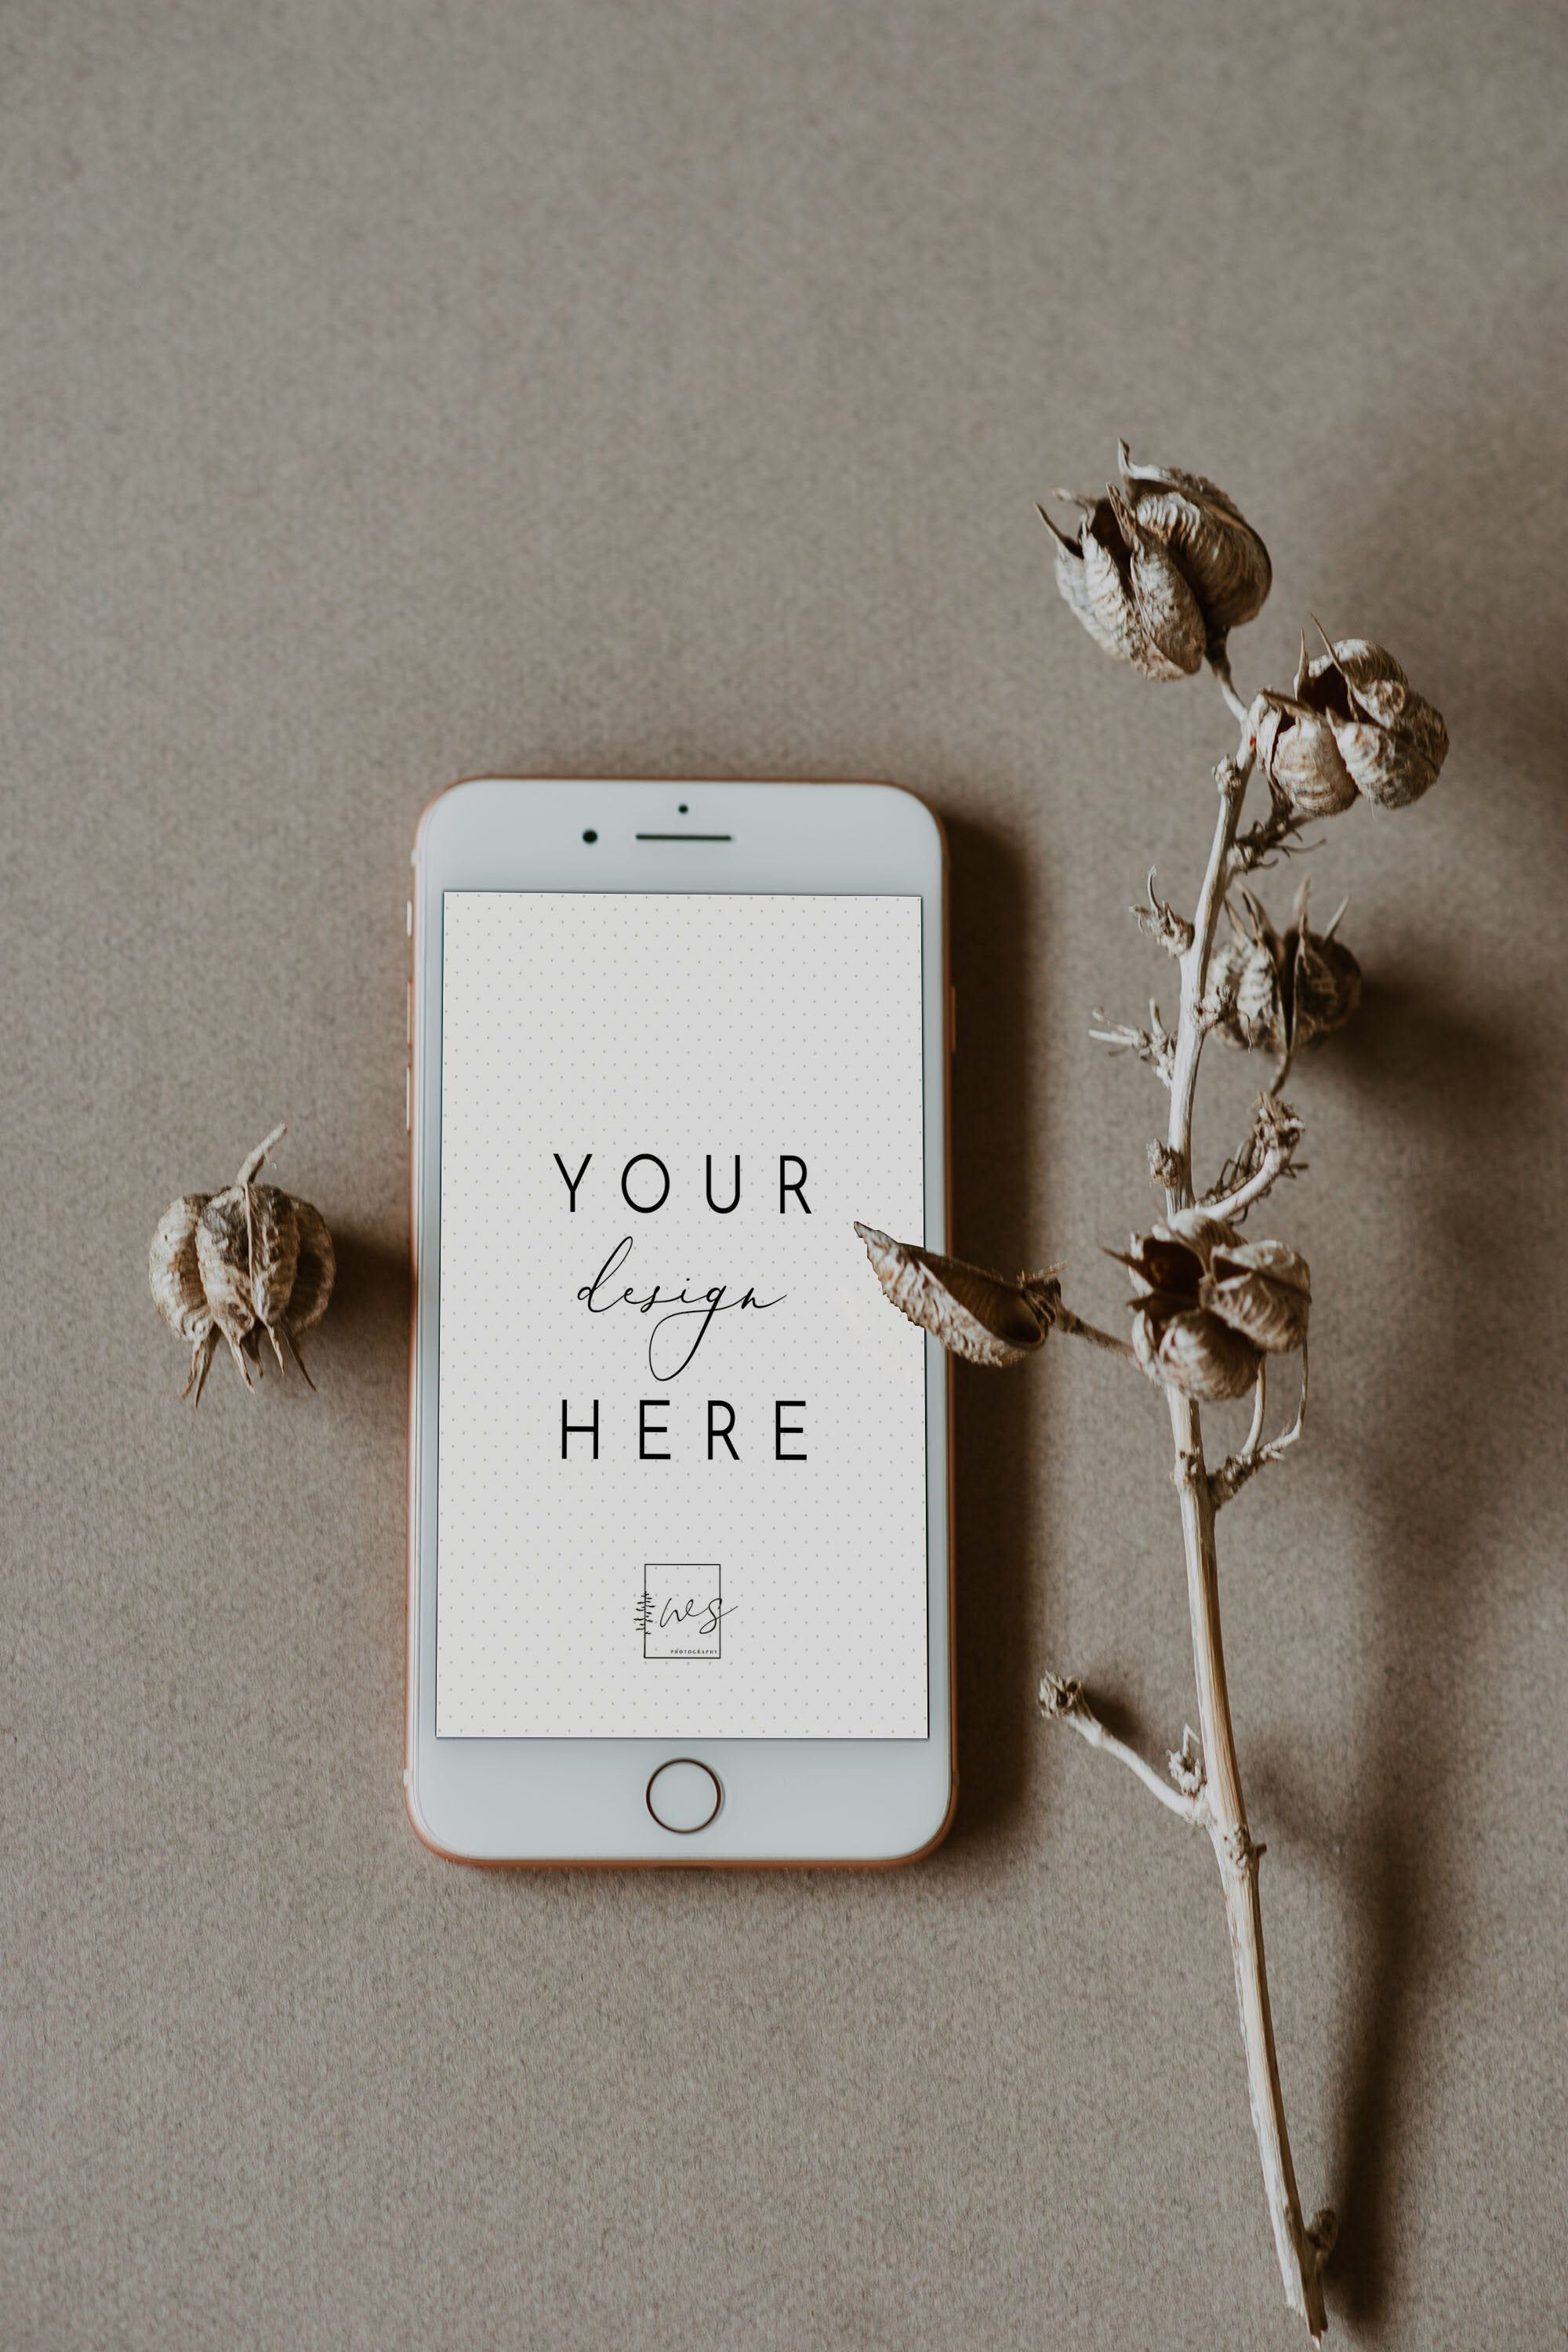 Download Iphone Mockup Iphone Mock Up Iphone Screen Mockup Iphone Etsy In 2021 Iphone Mockup Business Card Mock Up Iphone Screen